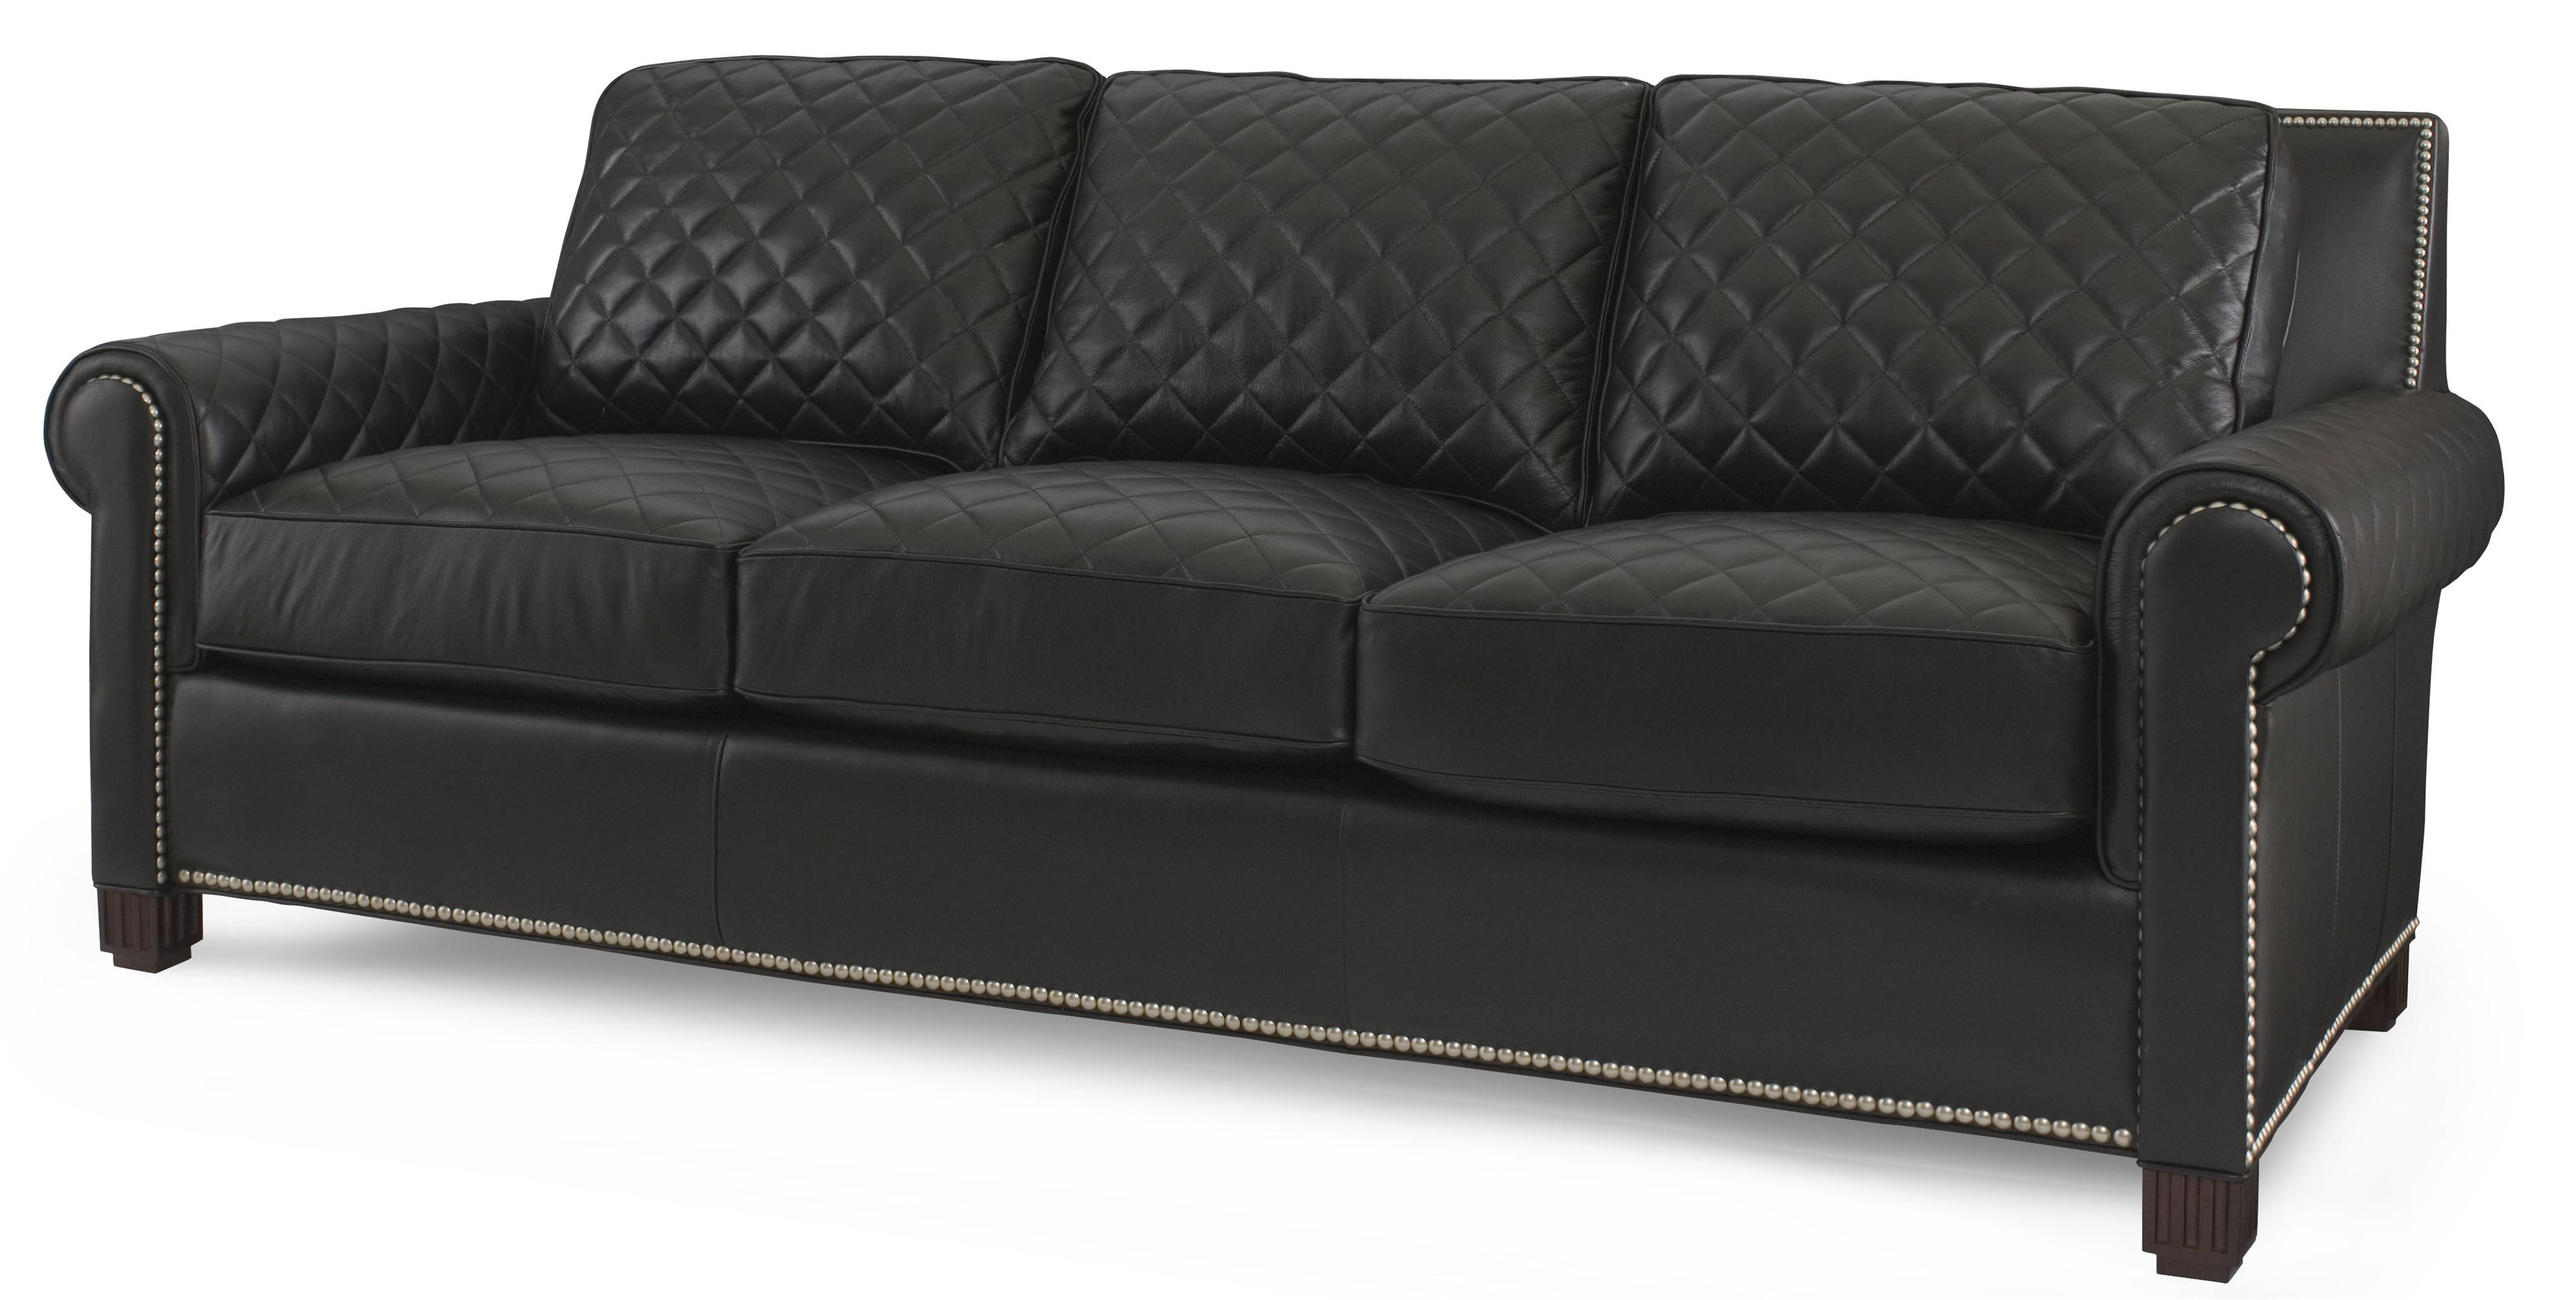 modern old hickory tannery sofa collection-Terrific Old Hickory Tannery sofa Pattern